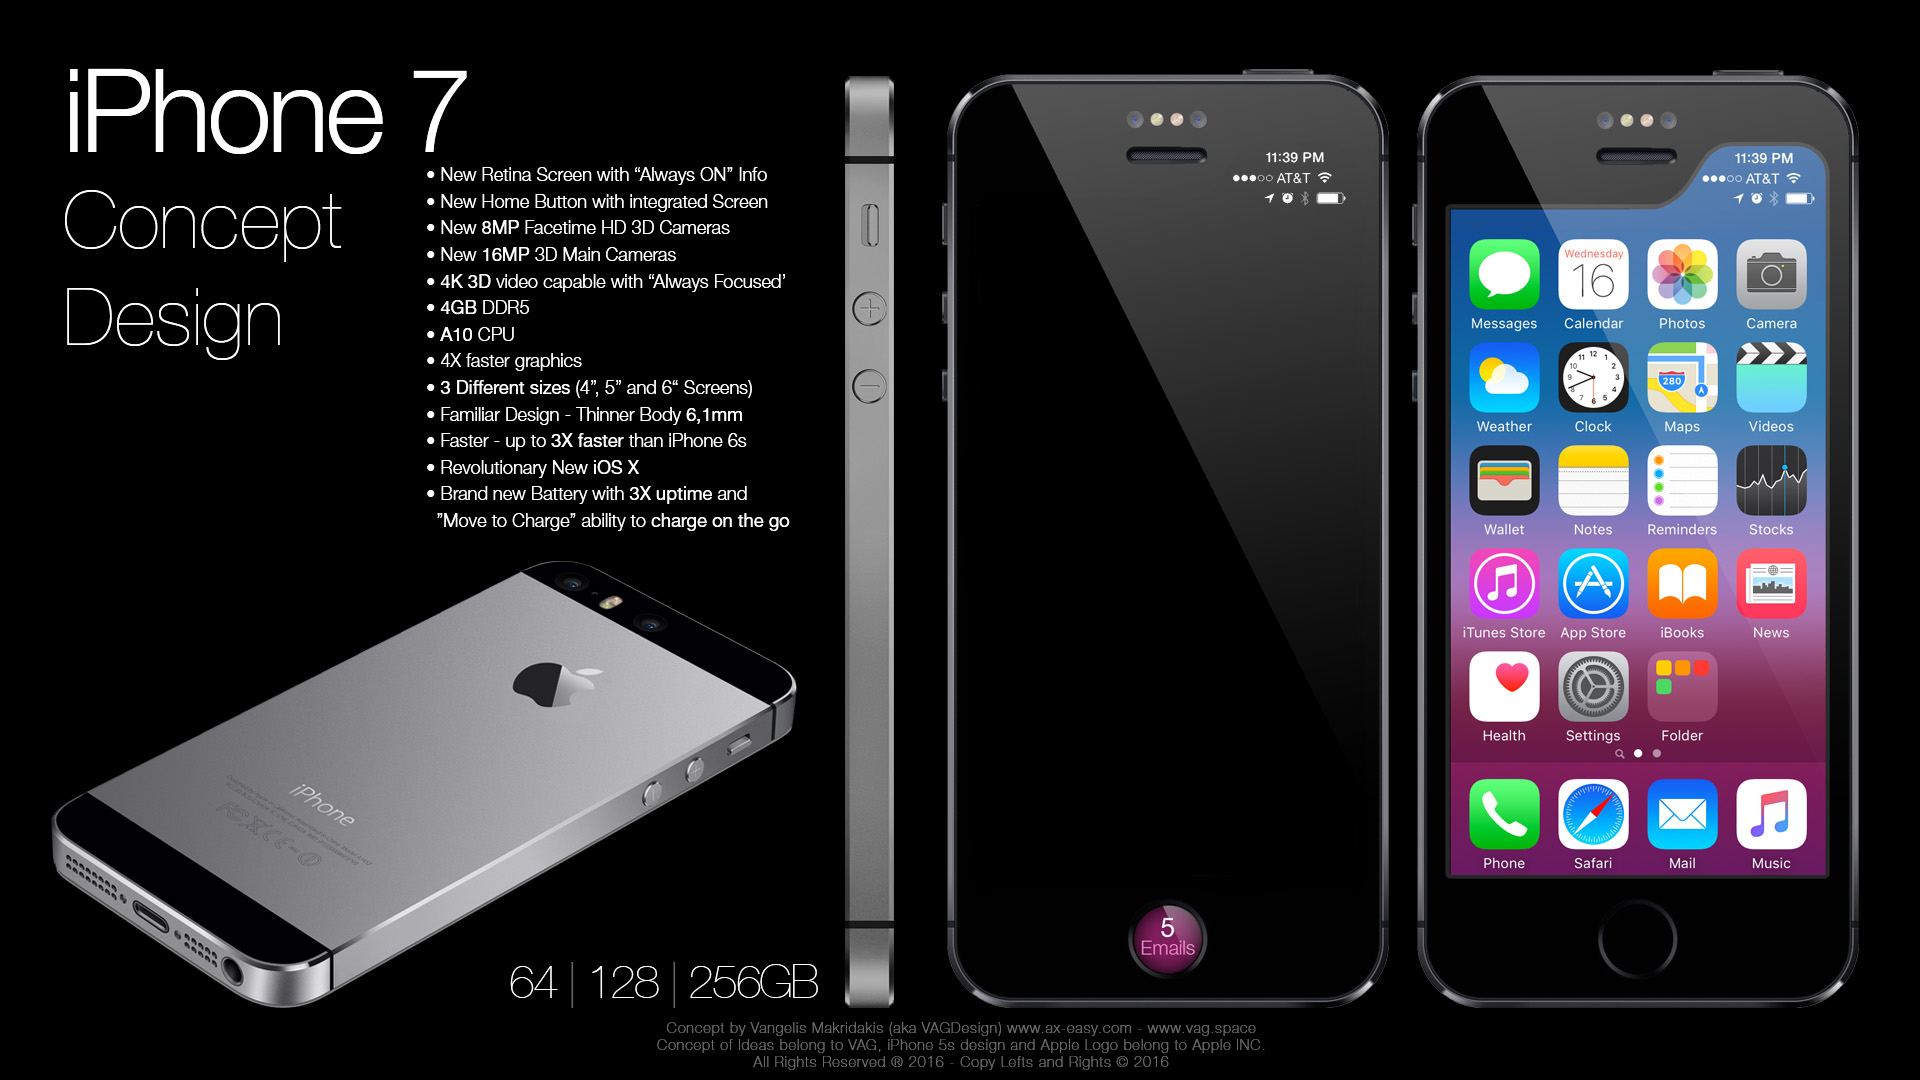 iPhone 7 Concept by VAG